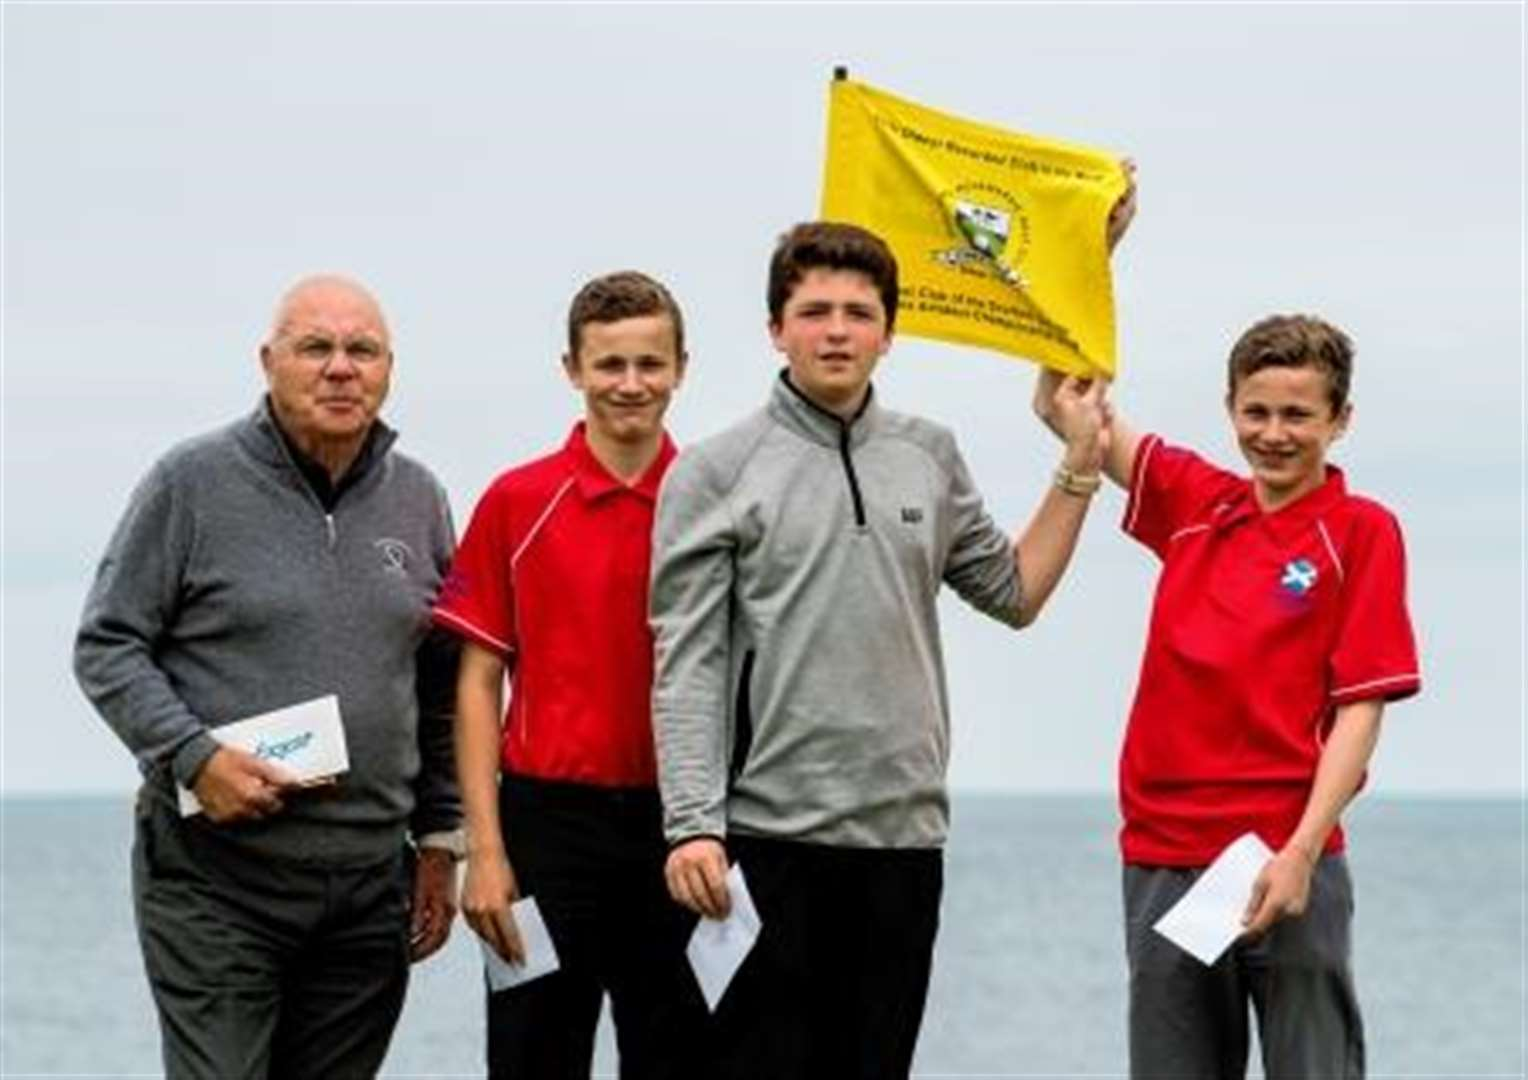 Muir of Ord juniors make their mark at golf tourney